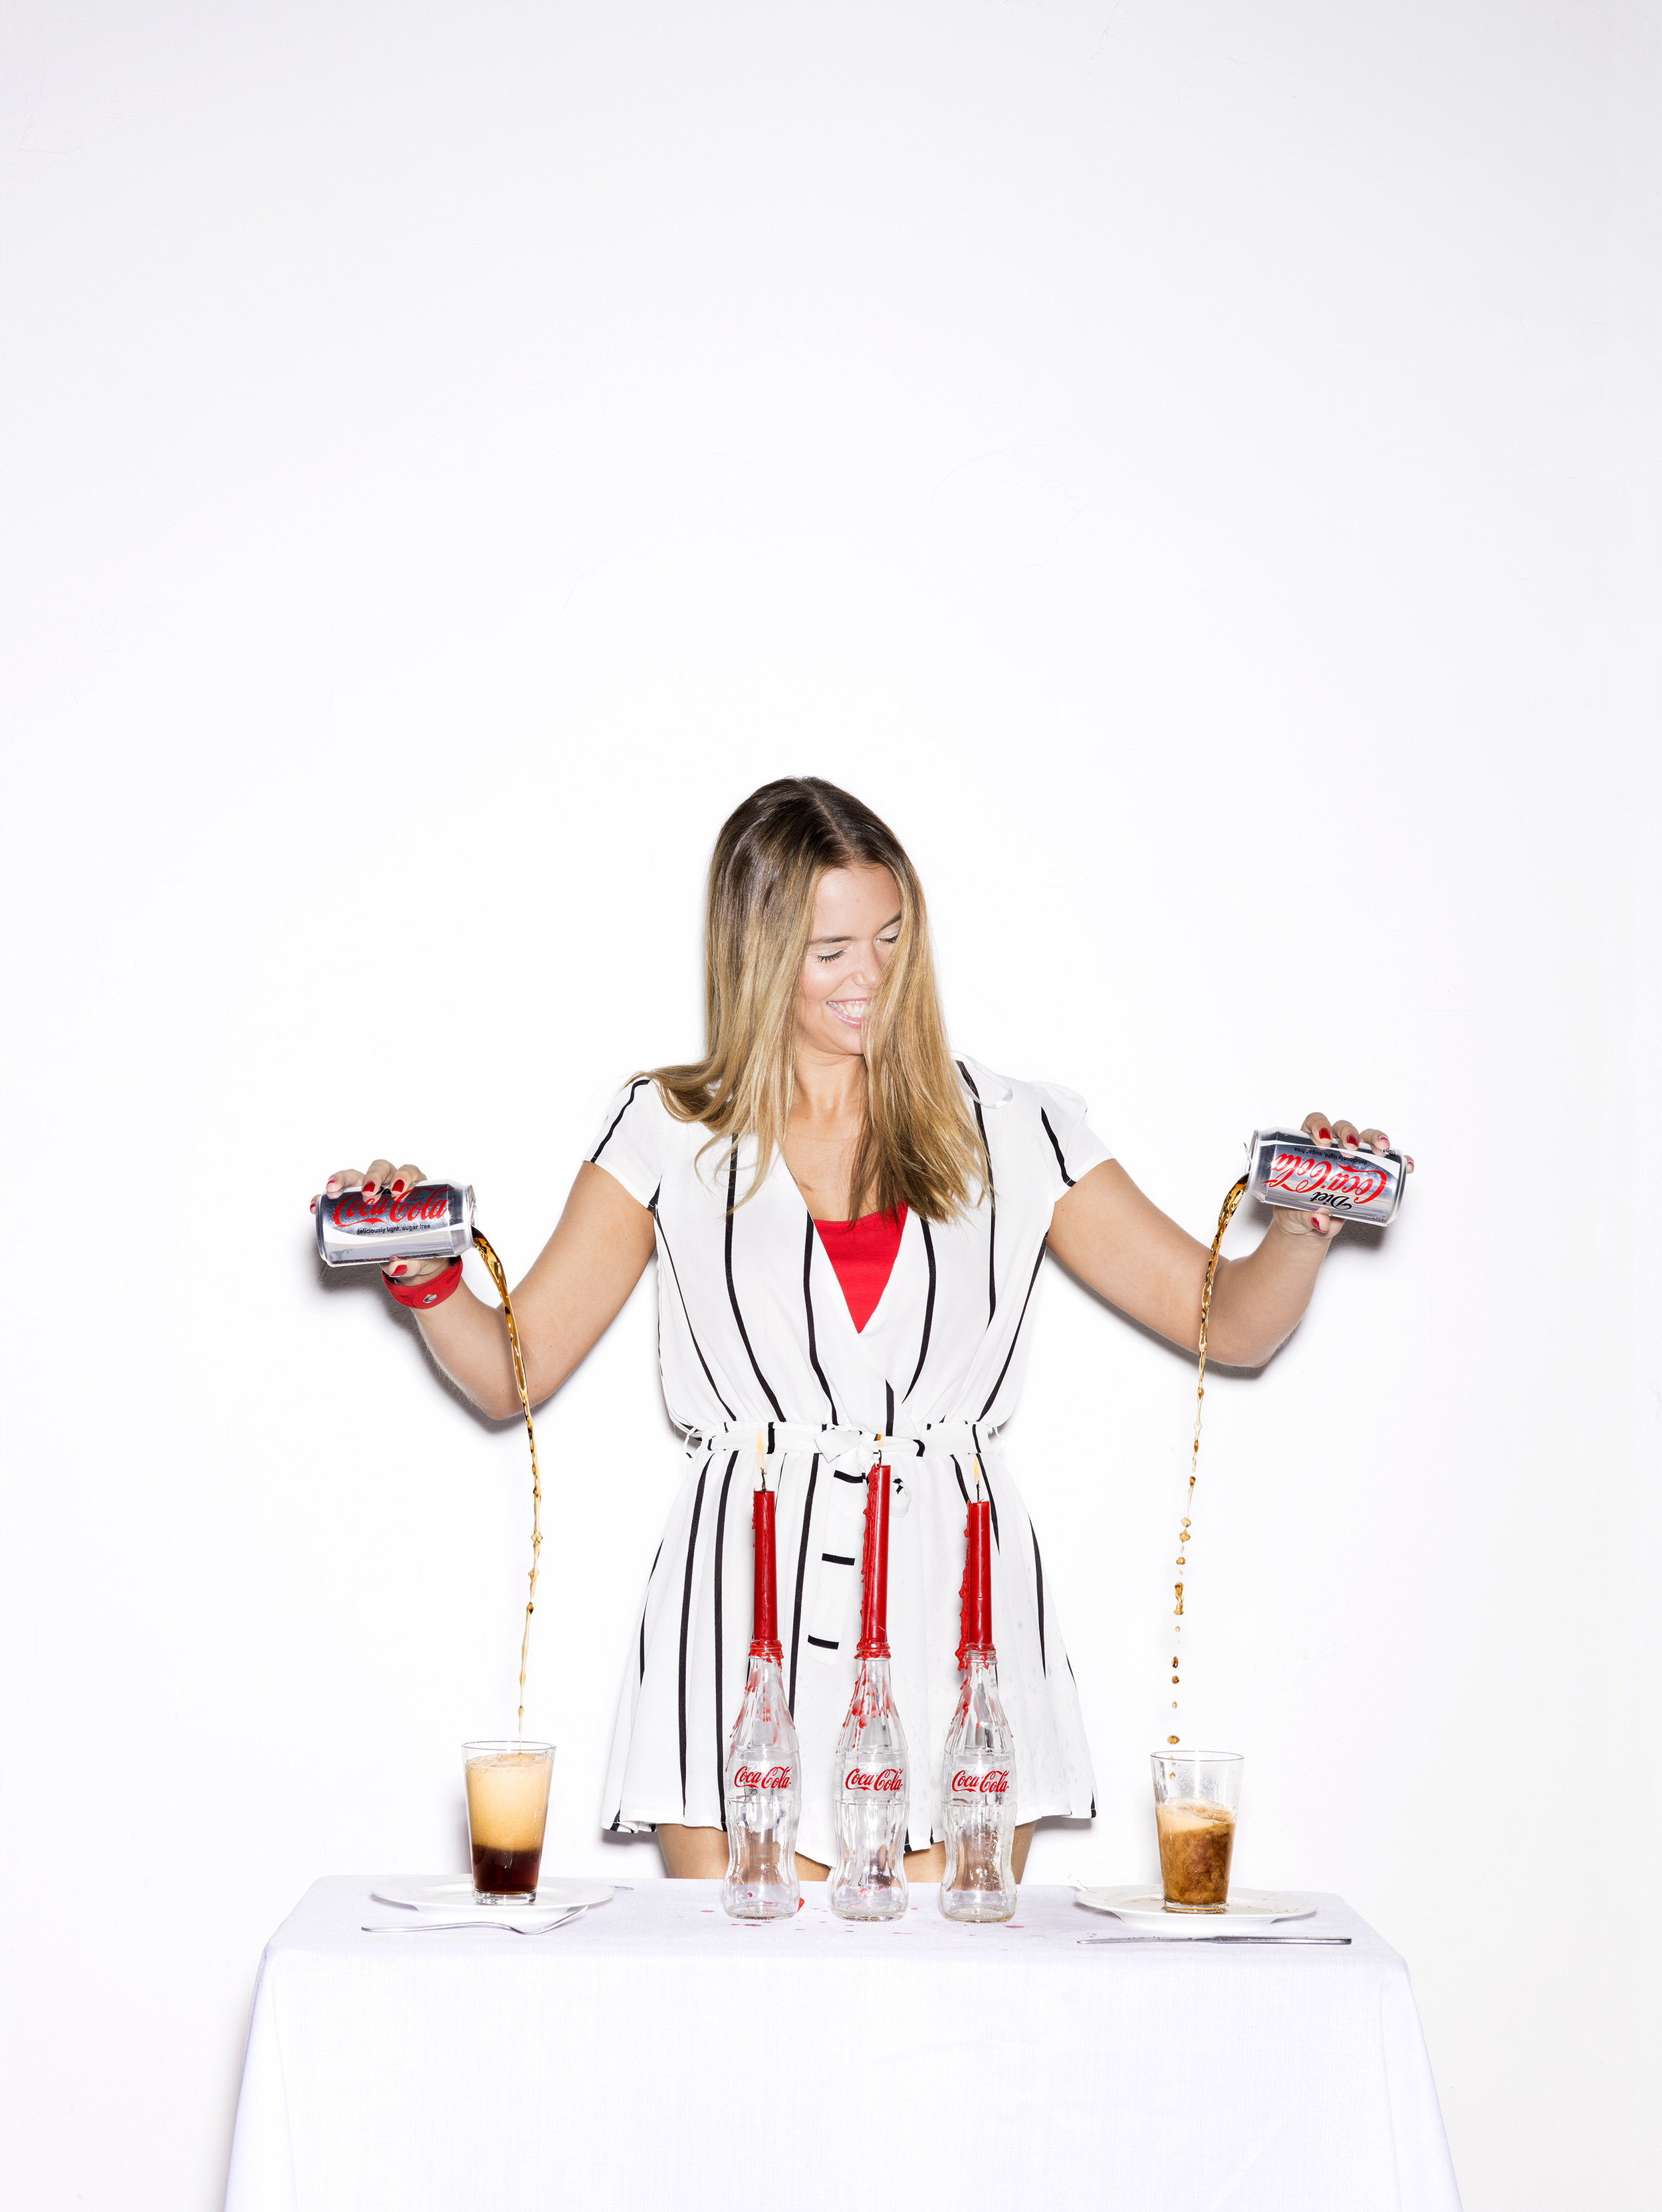 Girl pouring diet coke into glasses.